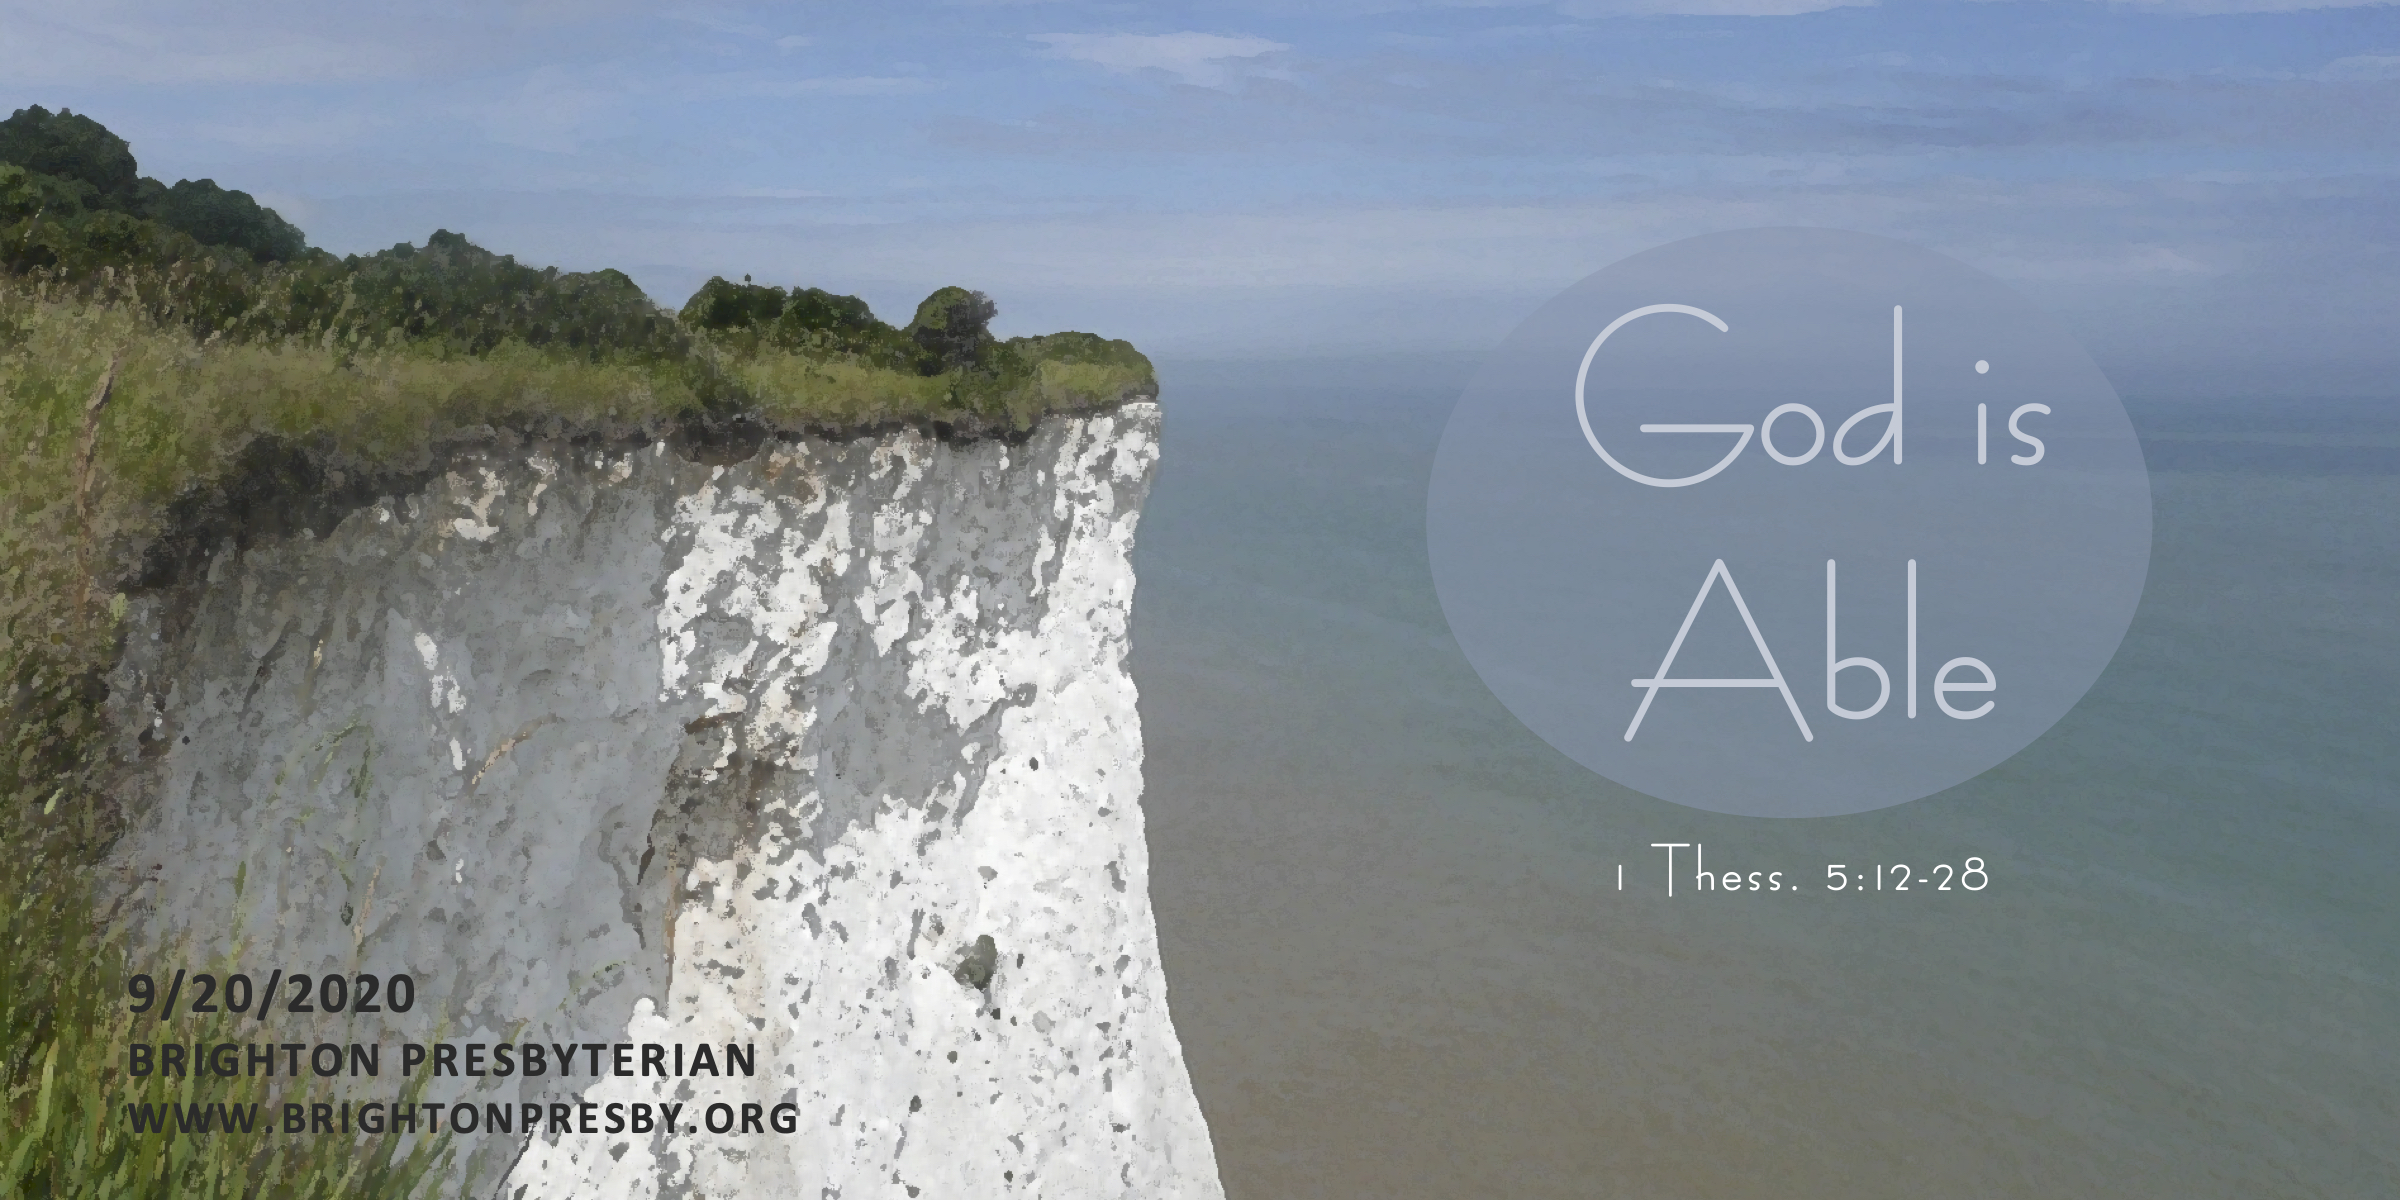 God is Able (Part 7 of 1 Thessalonians Series)